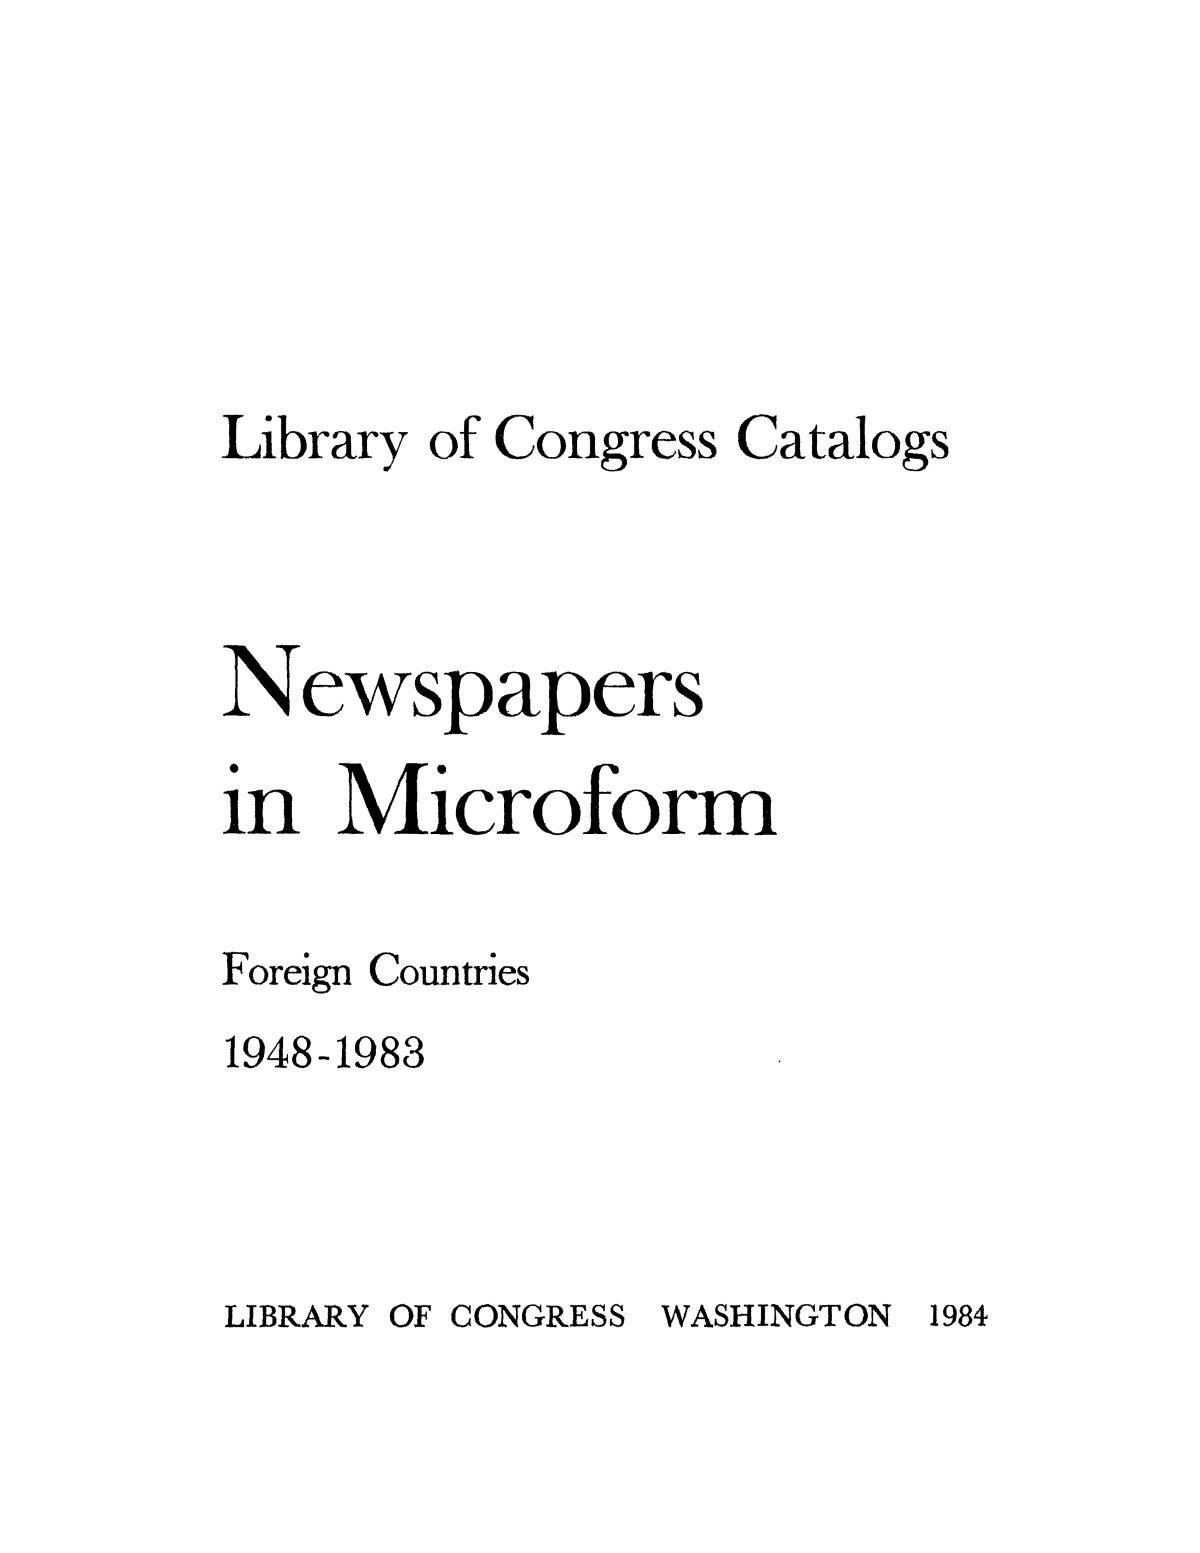 Library of Congress Catalogs: Newspapers in Microform, Foreign Countries, 1948-1983                                                                                                      I